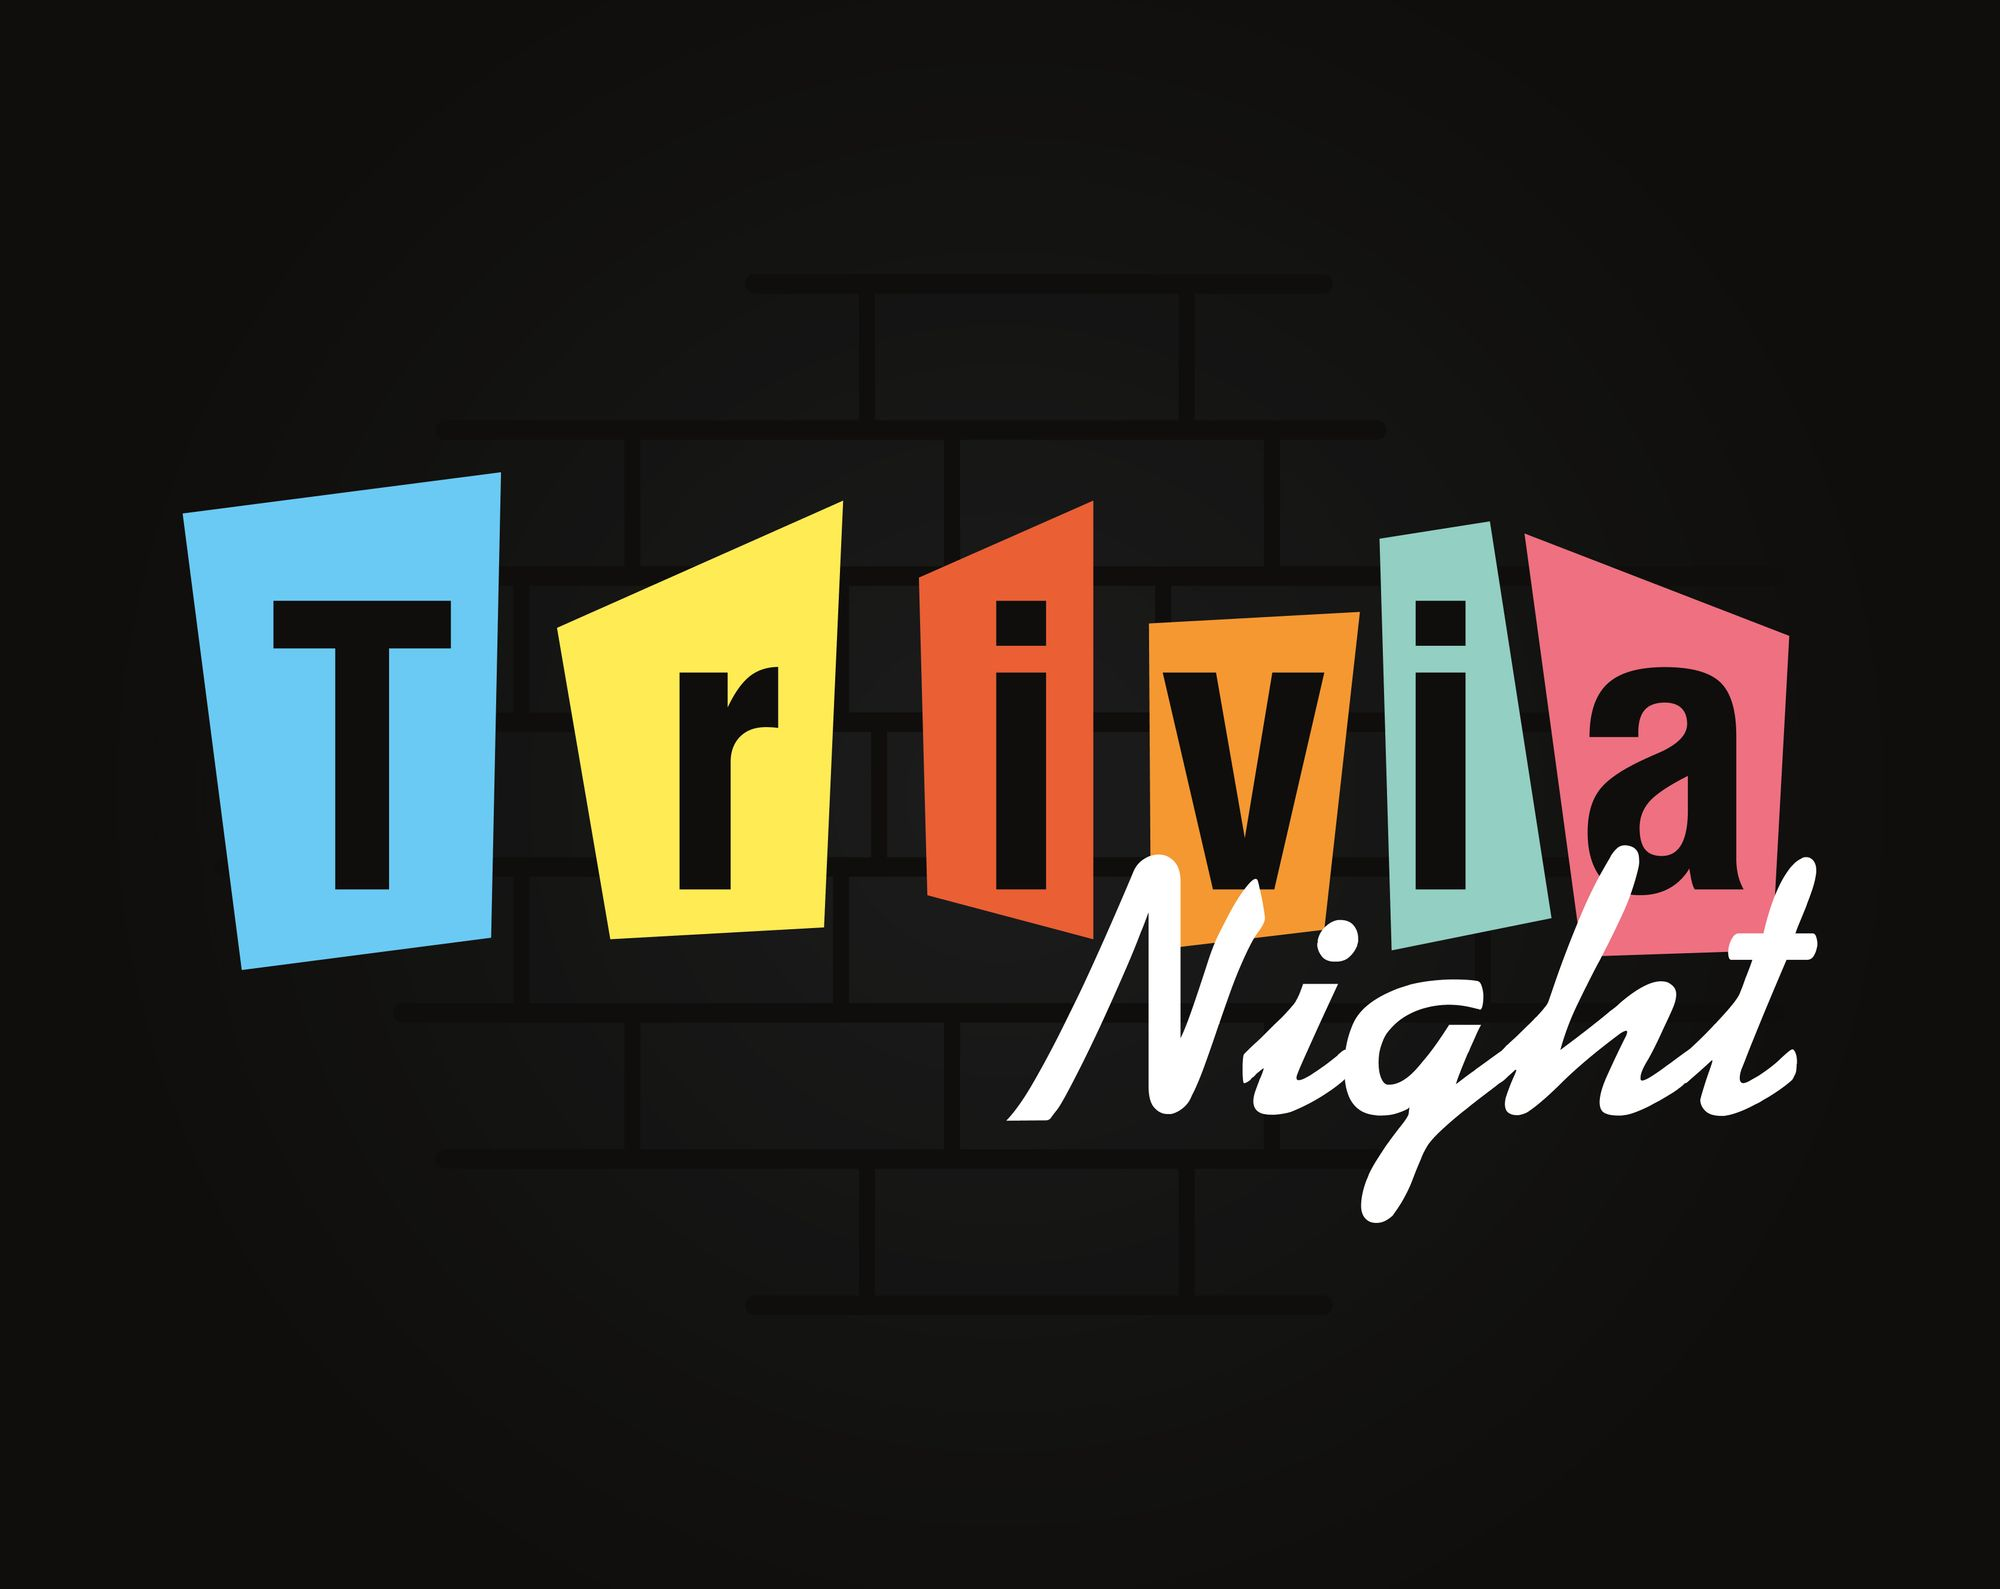 87 Hard Trivia Questions (All Categories)